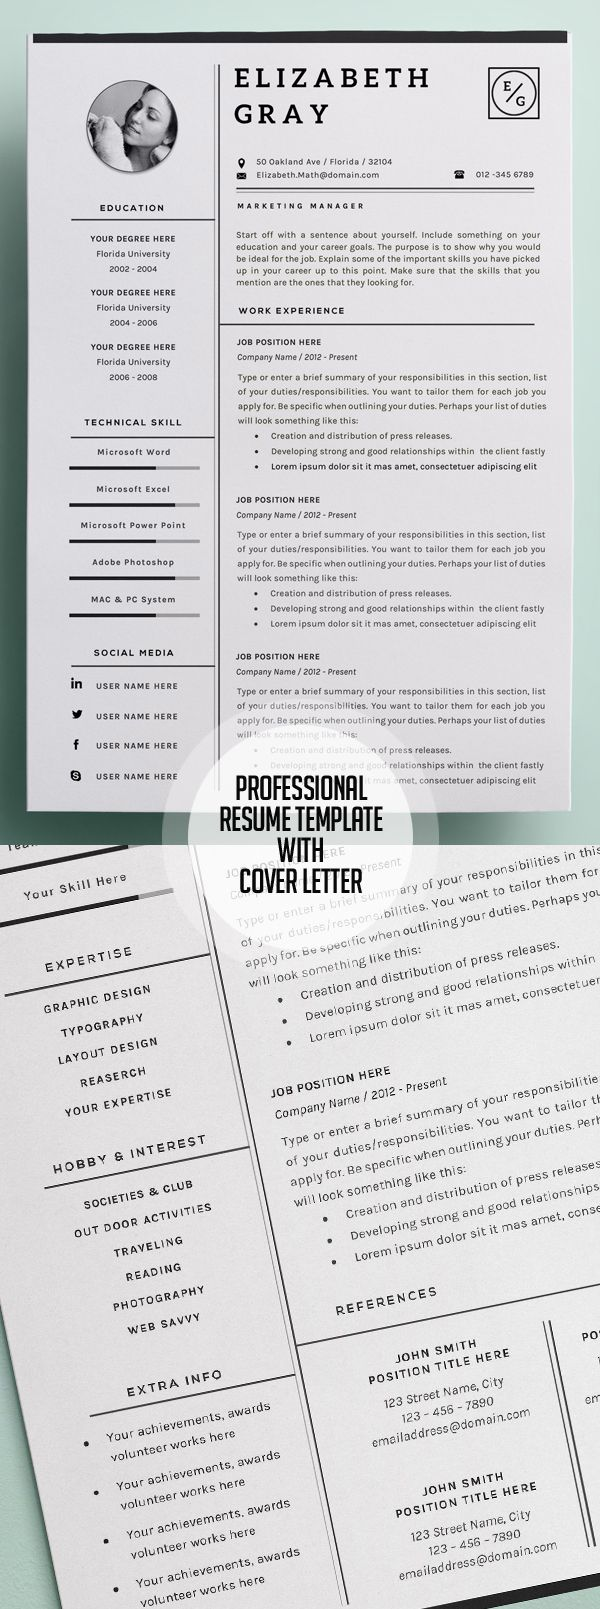 Picnictoimpeachus  Terrific  Resume Ideas On Pinterest  Resume Resume Templates And  With Lovable Professional And Modern Resume Template With Page Cover Cvtemplate With Astounding Free Resume Sites Also Resume Cover Letters Sample In Addition How To Organize A Resume And Assistant Manager Job Description Resume As Well As Resume Goals Additionally Dental Assistant Resume Skills From Pinterestcom With Picnictoimpeachus  Lovable  Resume Ideas On Pinterest  Resume Resume Templates And  With Astounding Professional And Modern Resume Template With Page Cover Cvtemplate And Terrific Free Resume Sites Also Resume Cover Letters Sample In Addition How To Organize A Resume From Pinterestcom